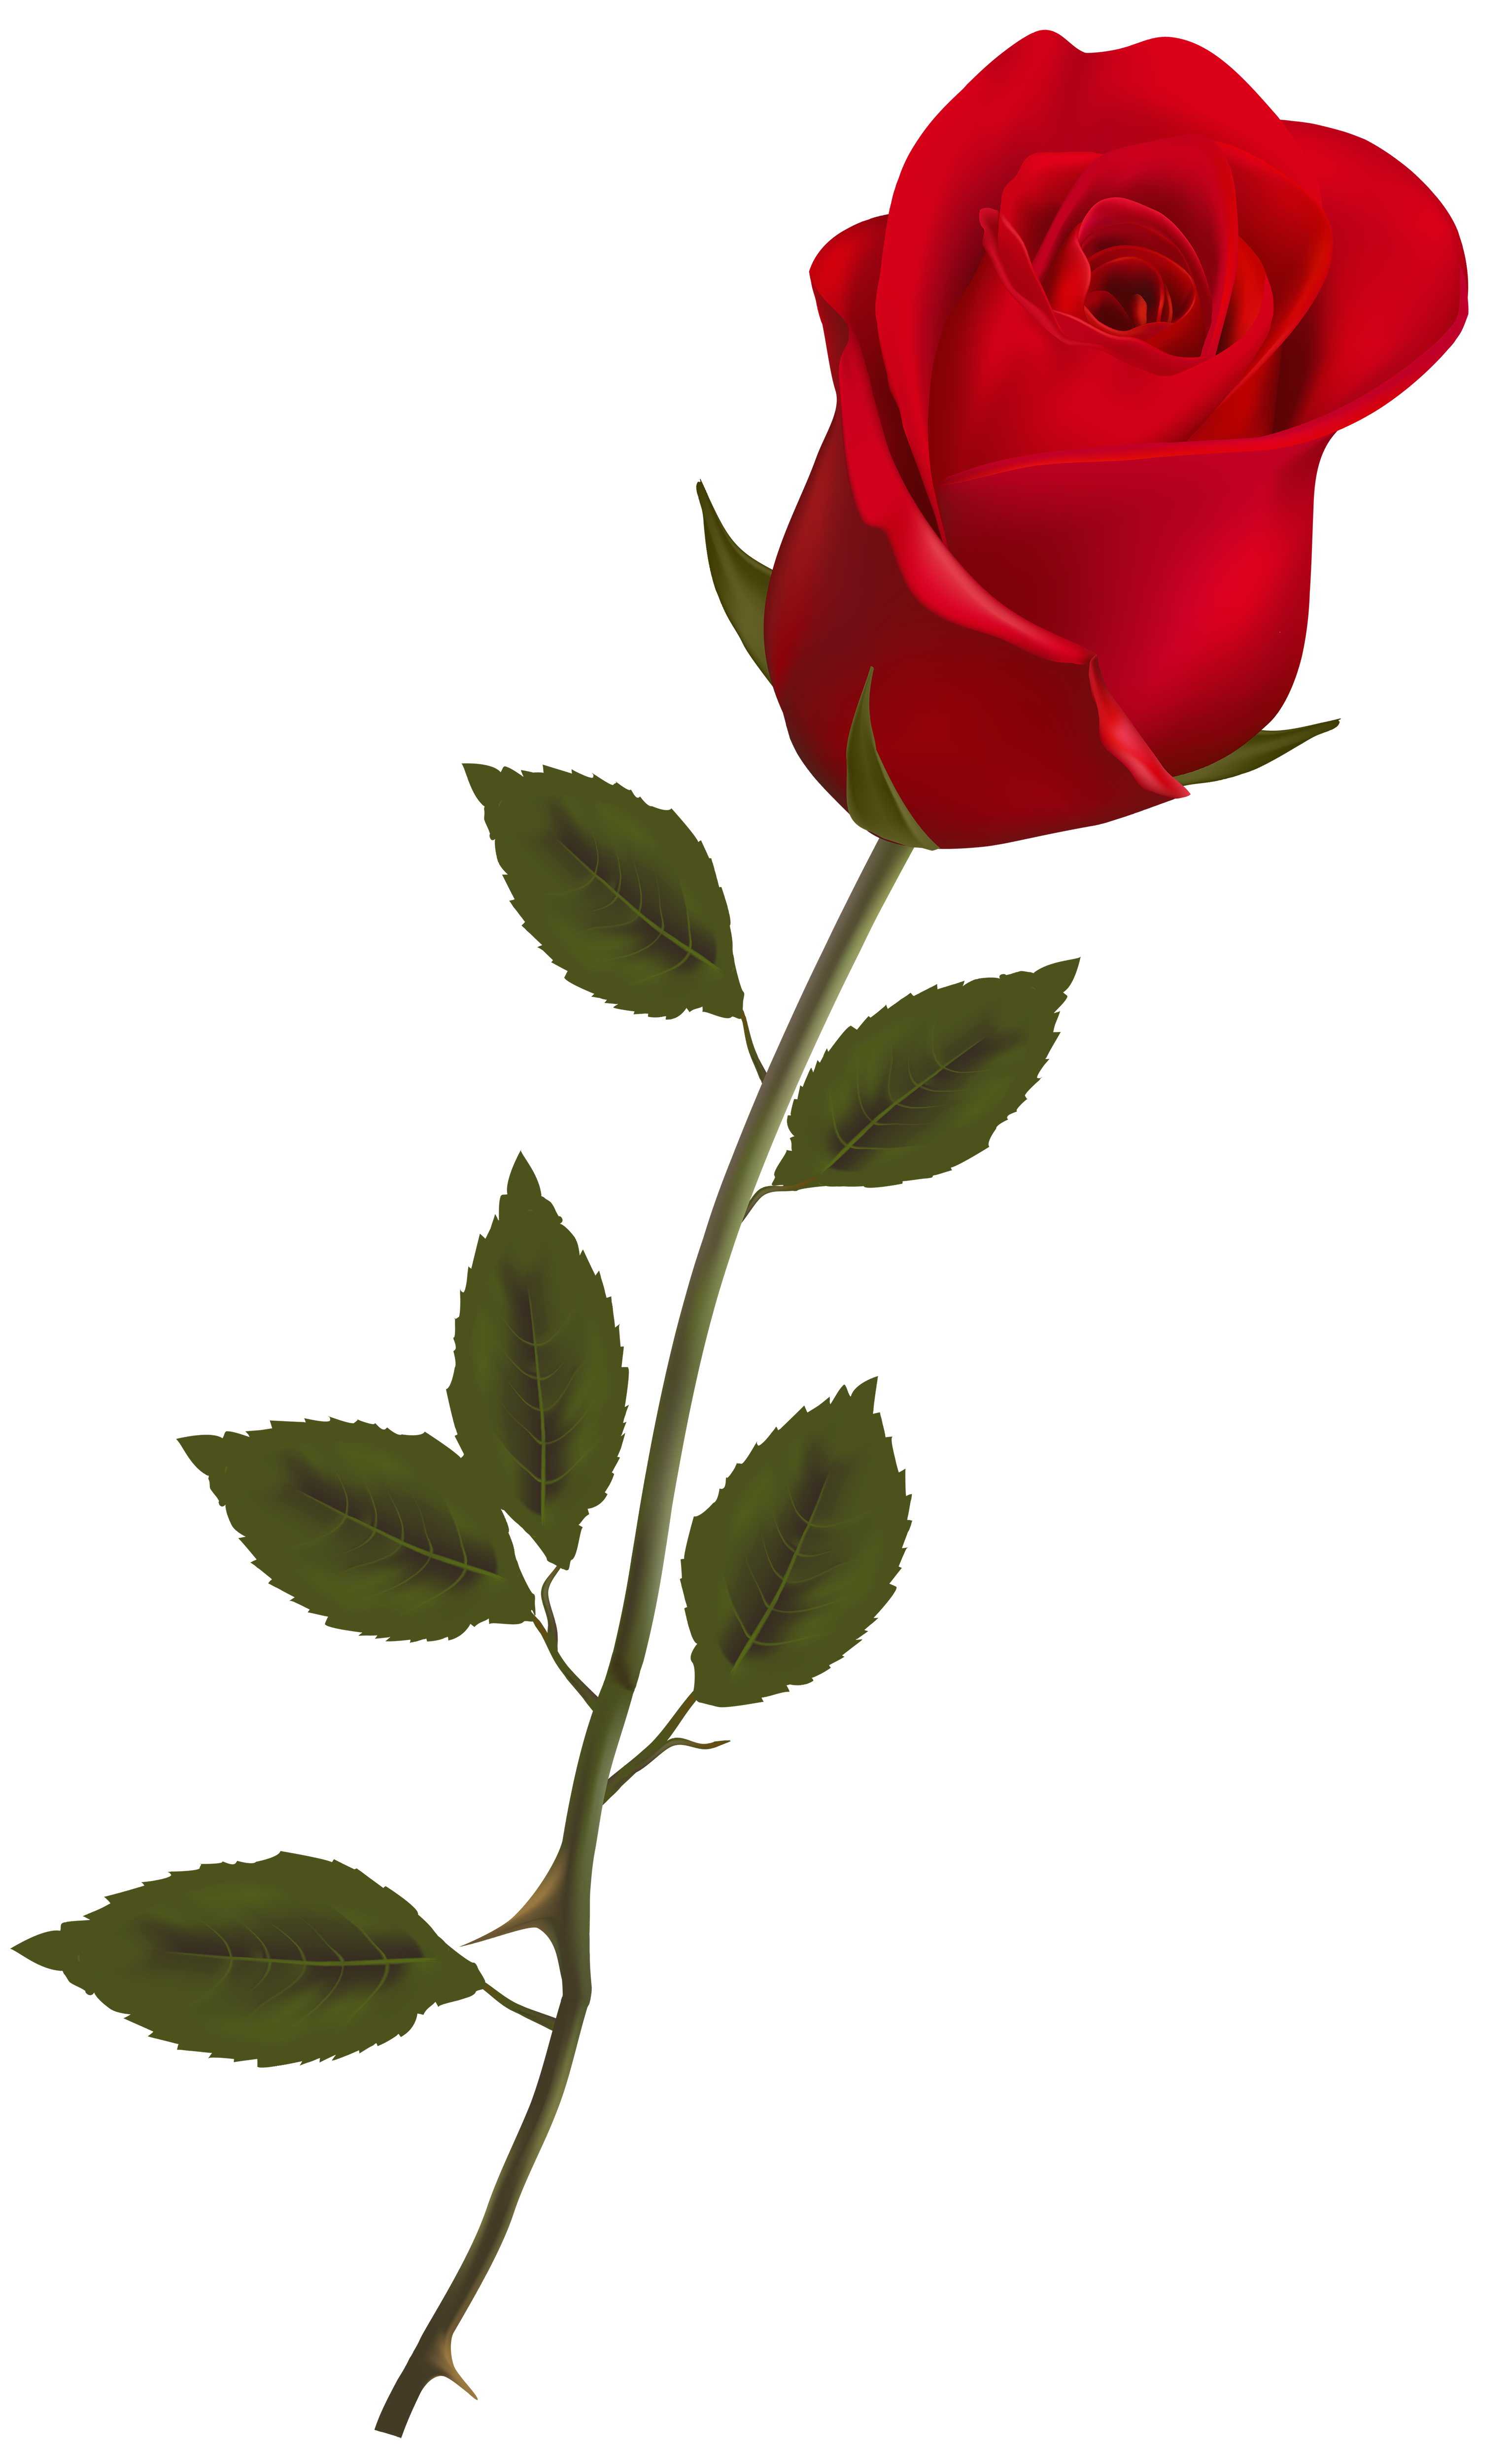 Roses Png Image image #39854 - Rose PNG